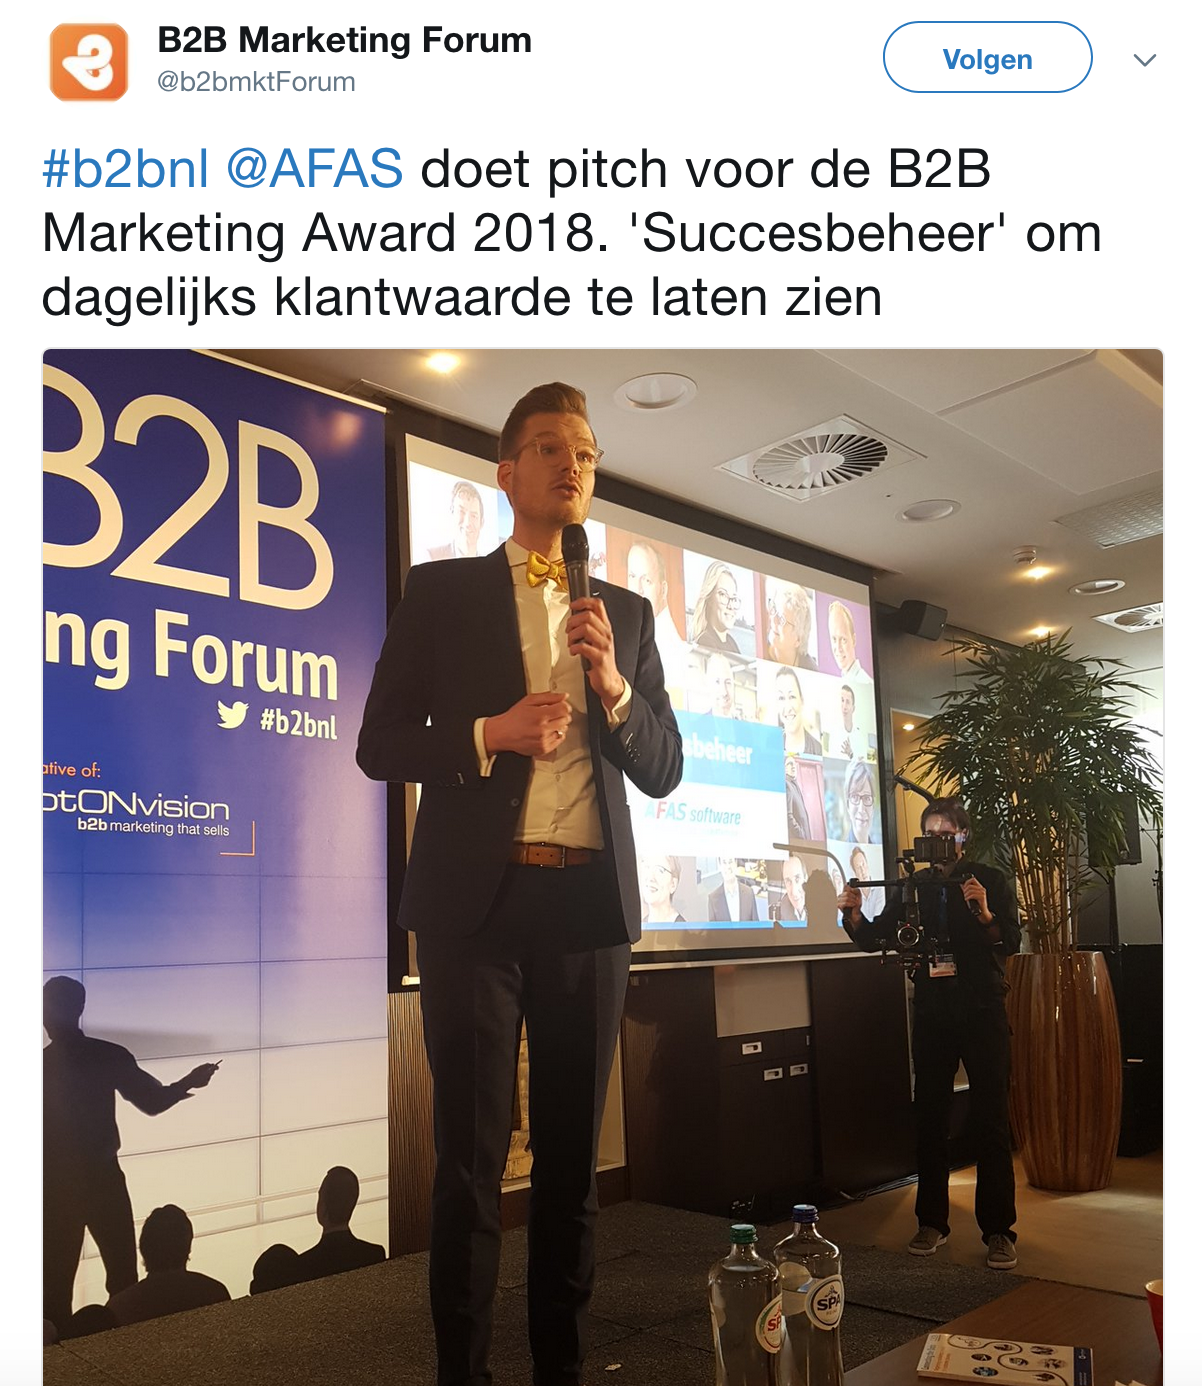 B2B Marketing Award 2018 - AFAS